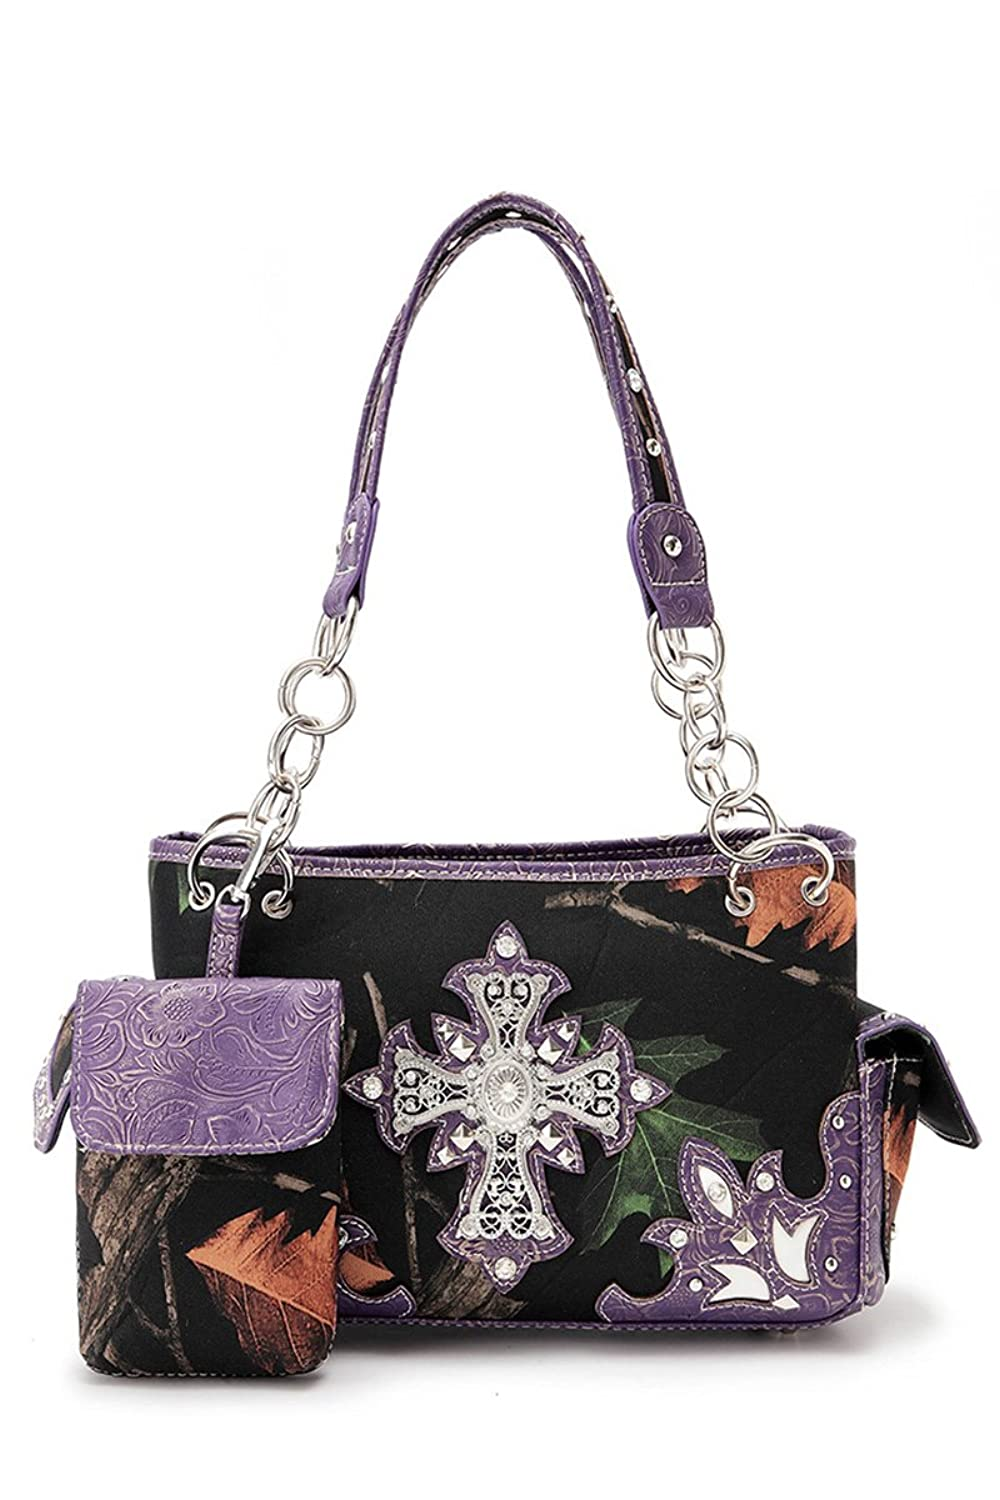 LColette Western Cowgirl Camouflage With Cross 2 Side Pocket Satchel Bag BML48469C